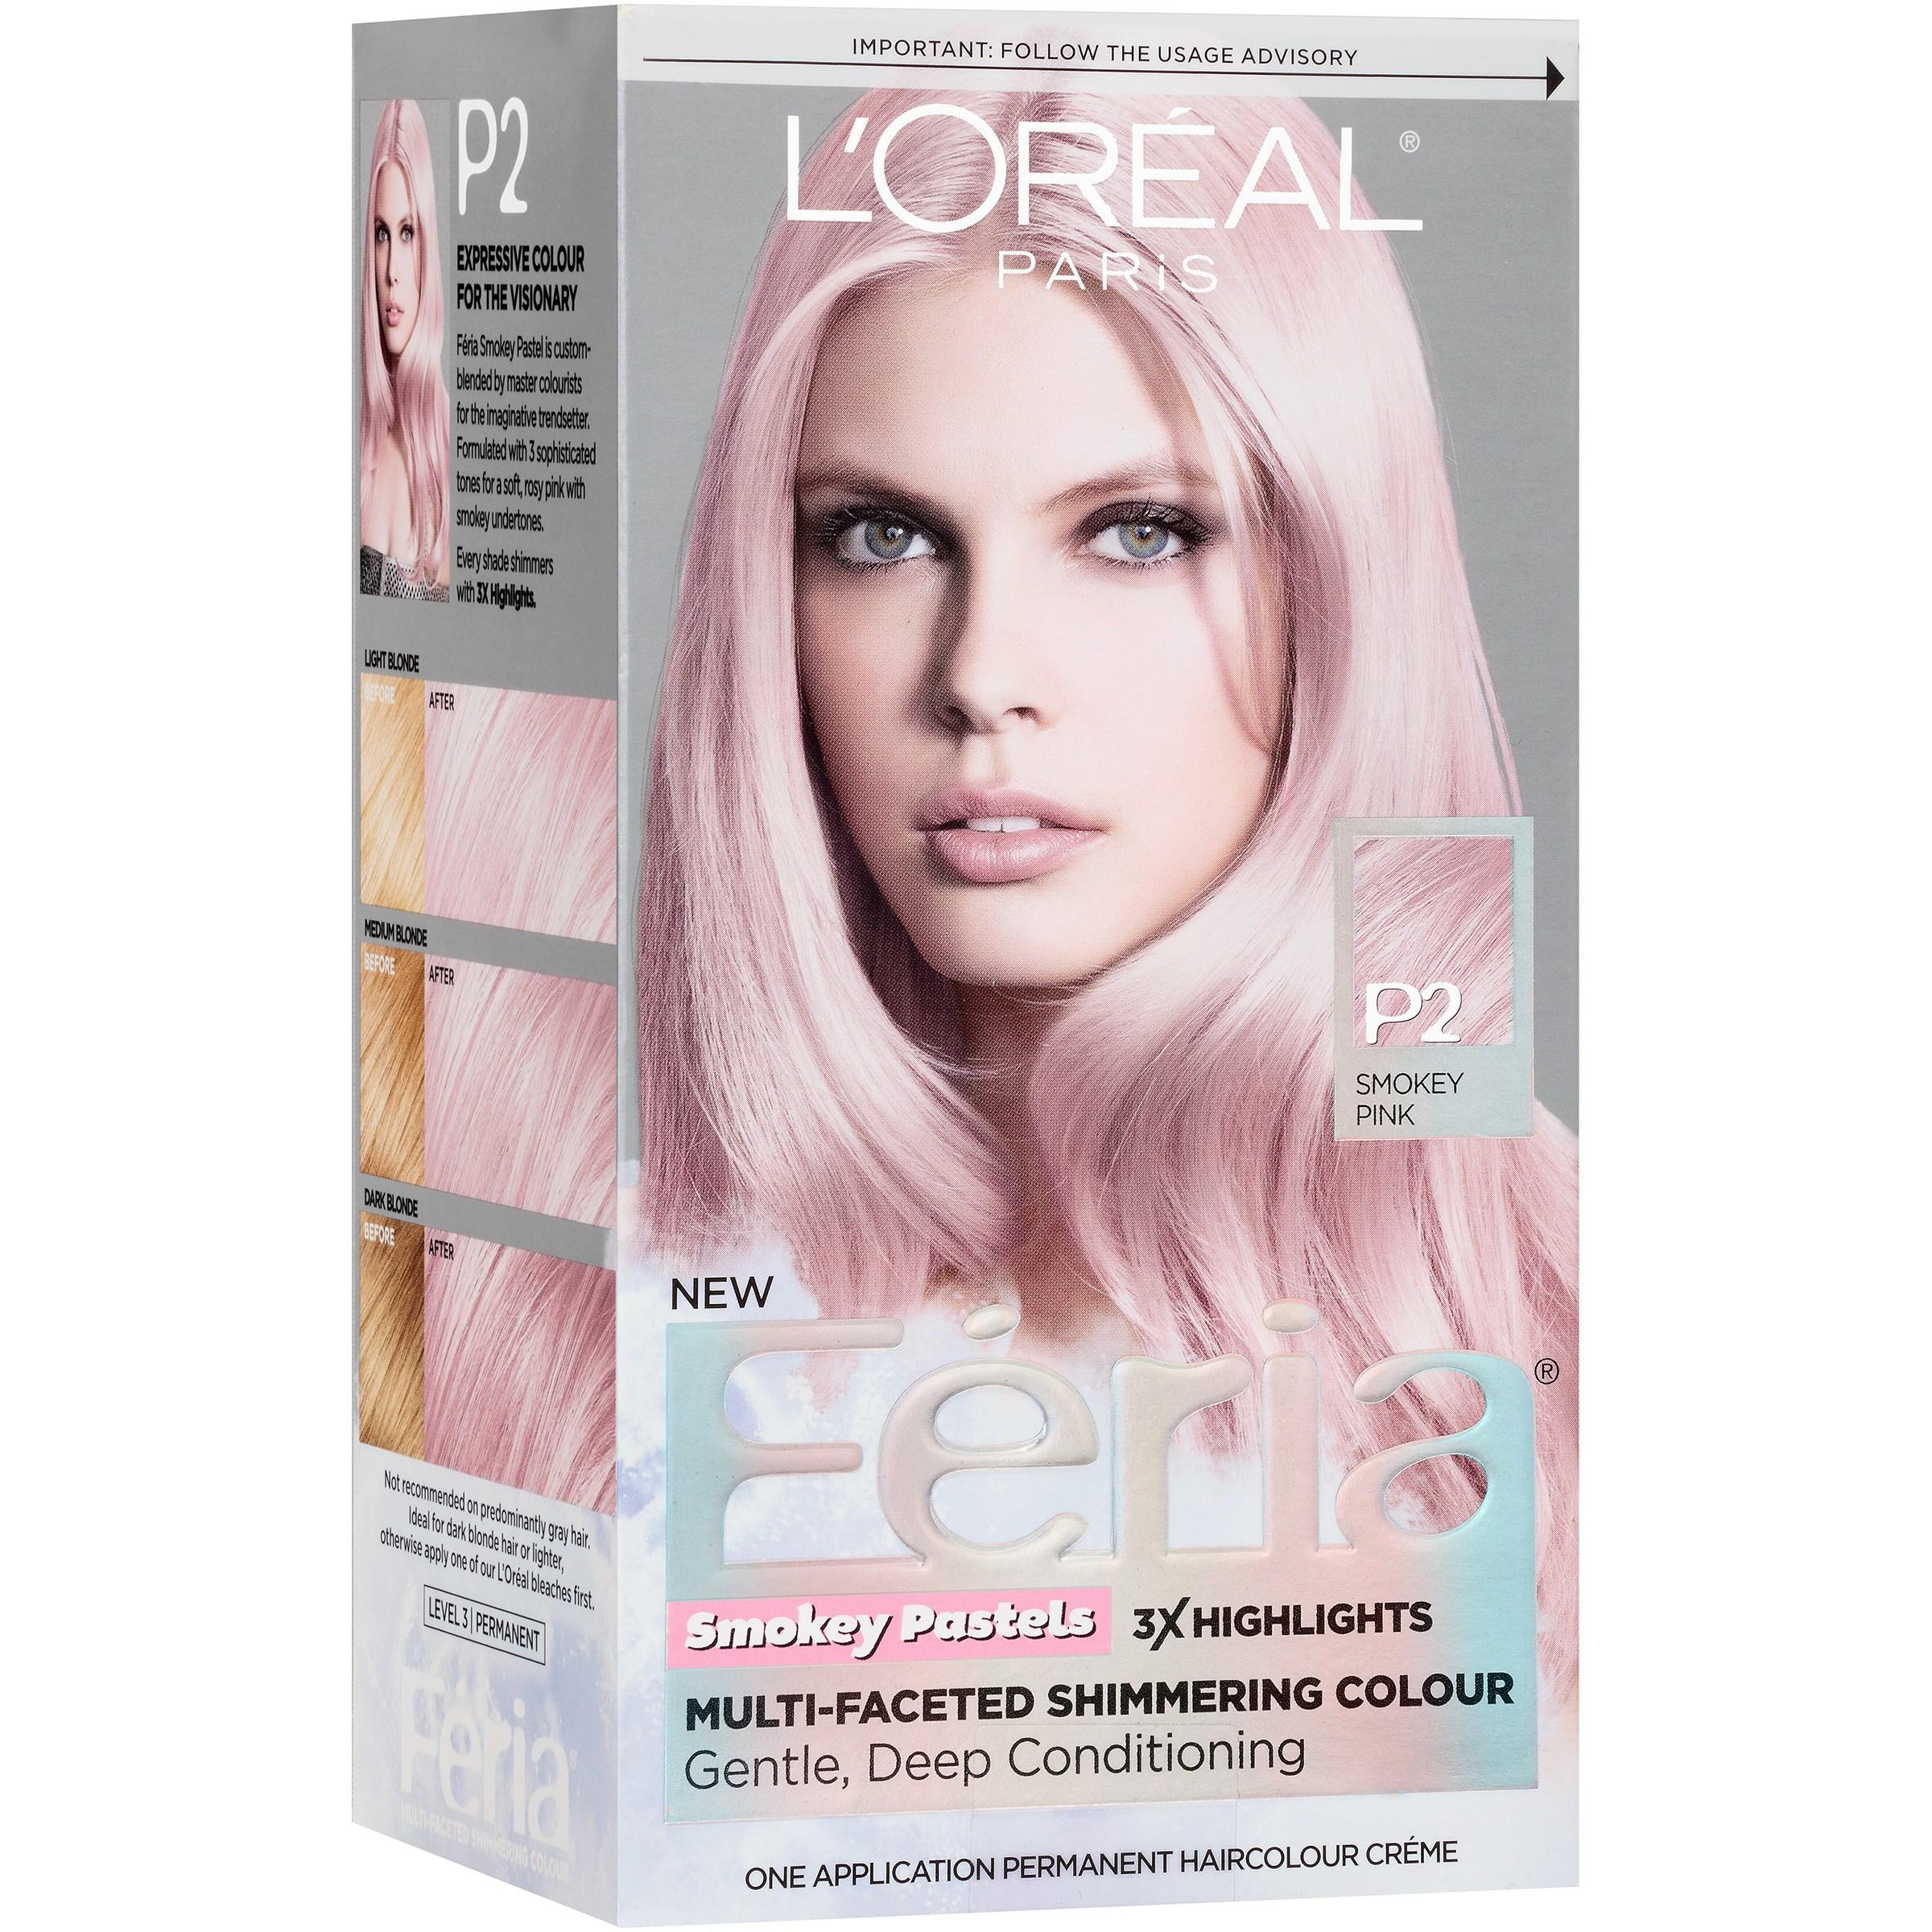 The Best Hair Dye Kmart Pictures